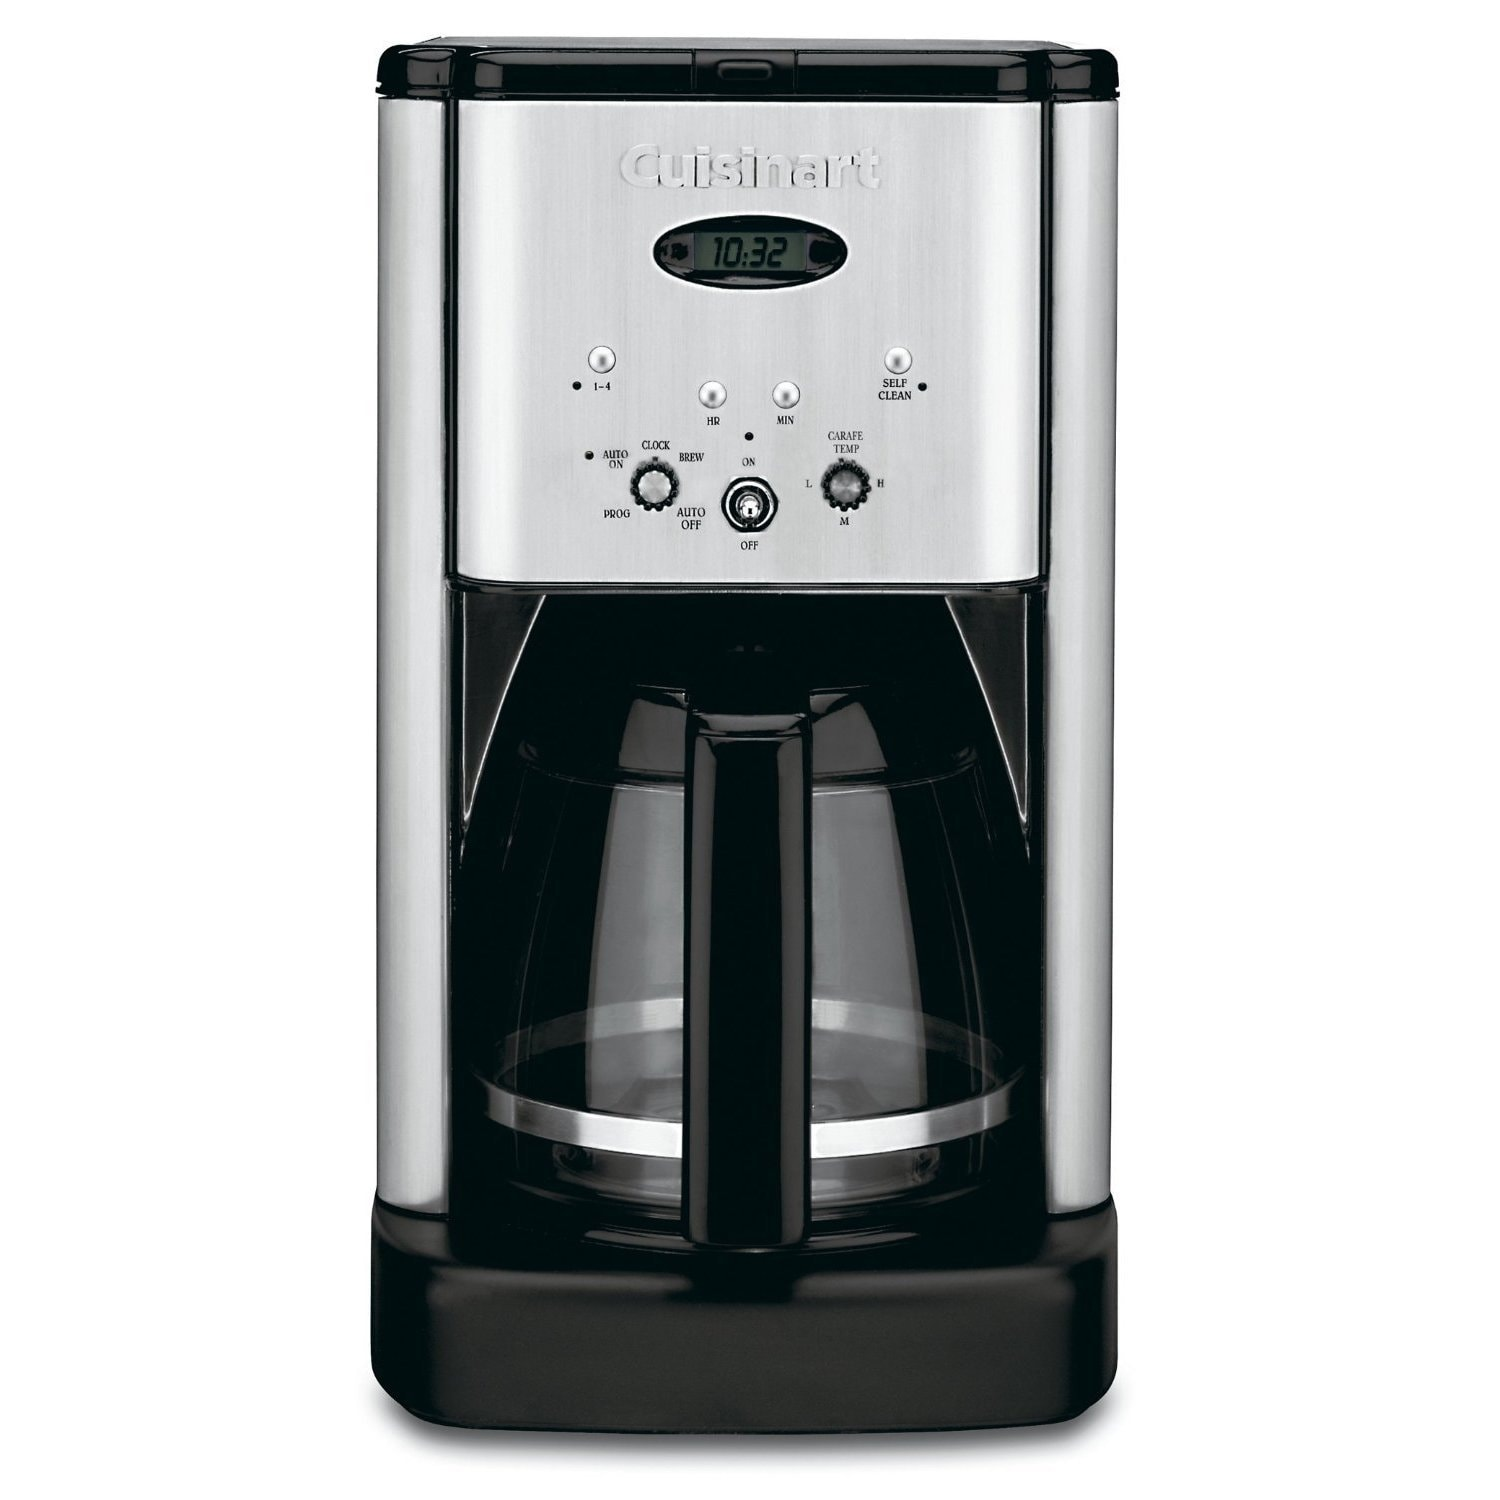 Cuisinart DCC-1200 12-cup Brew Central Programmable Coffe...